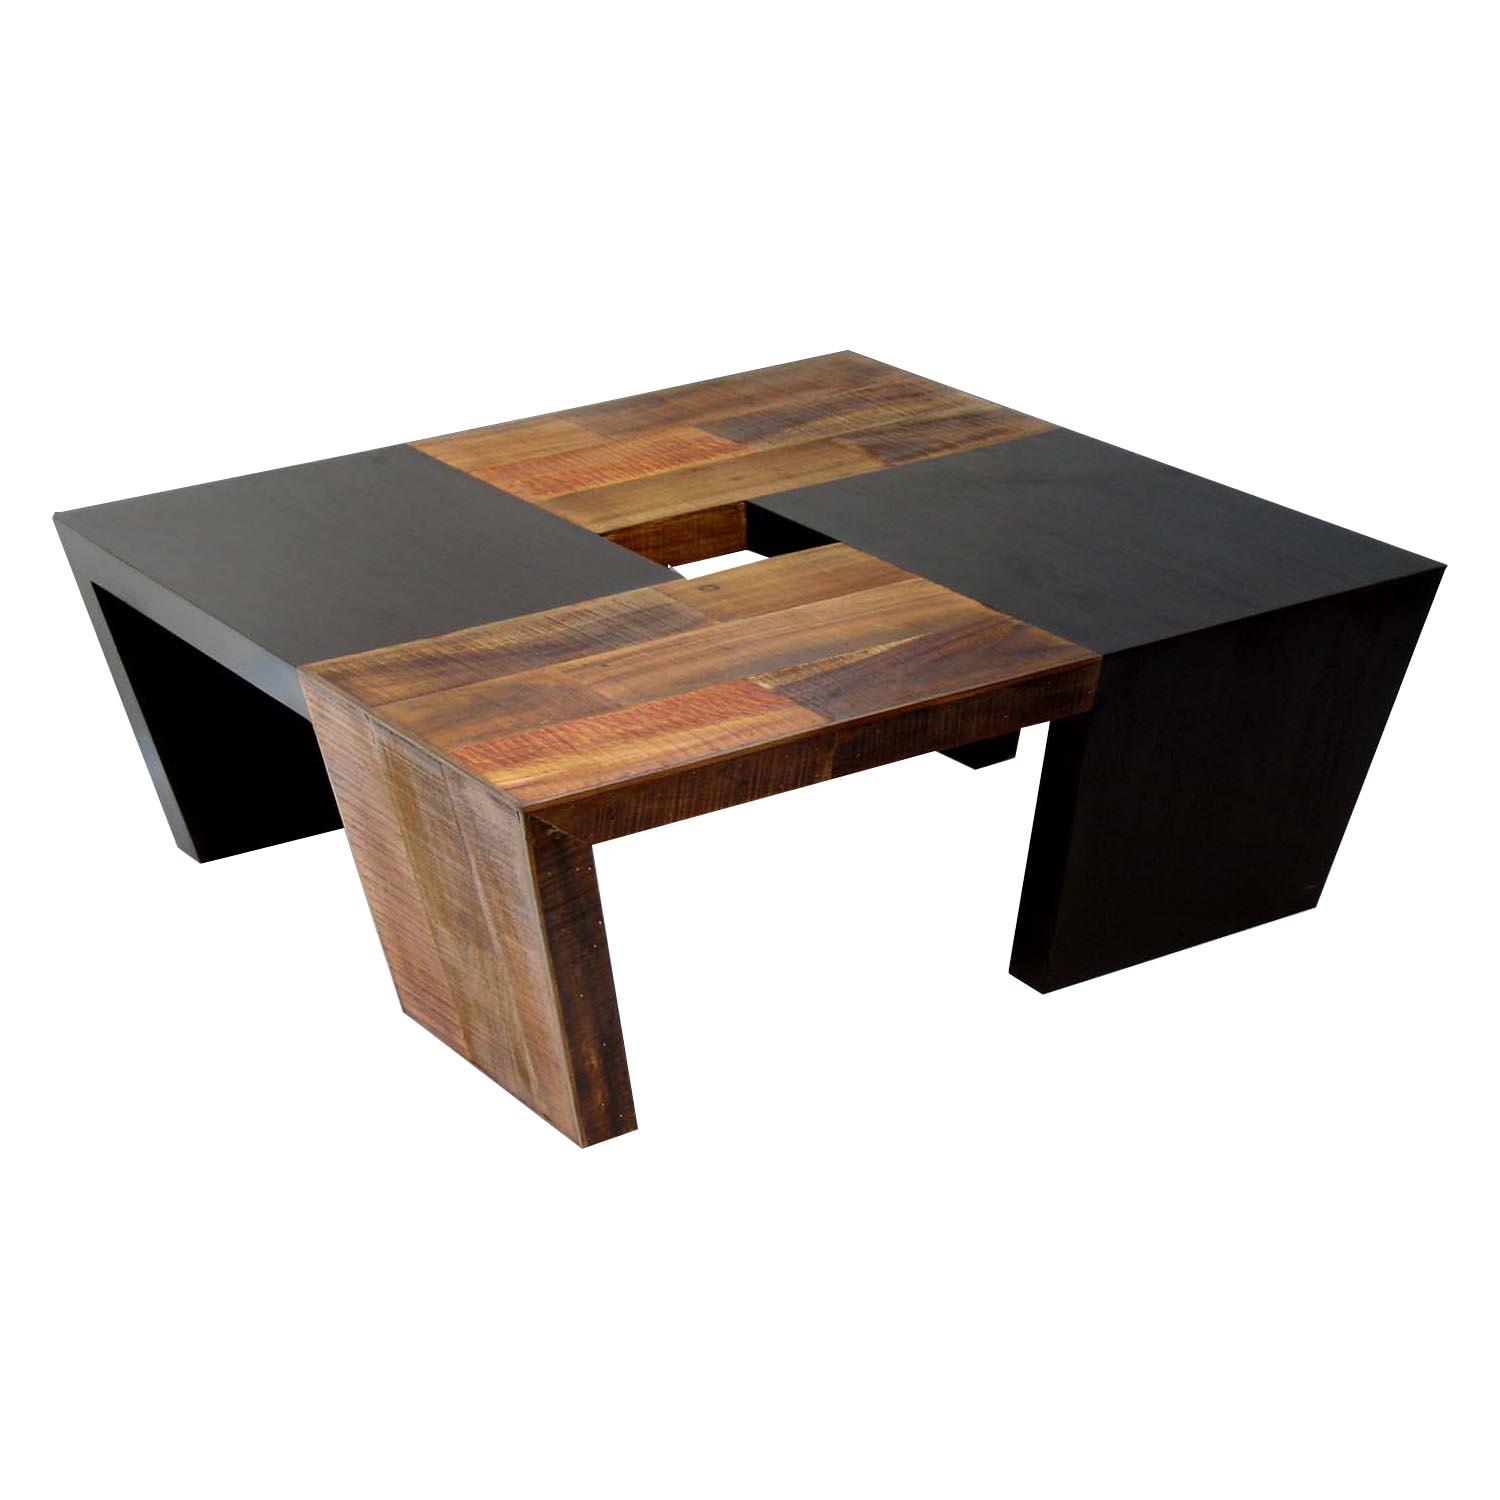 modern wooden coffee table designs photo - 2